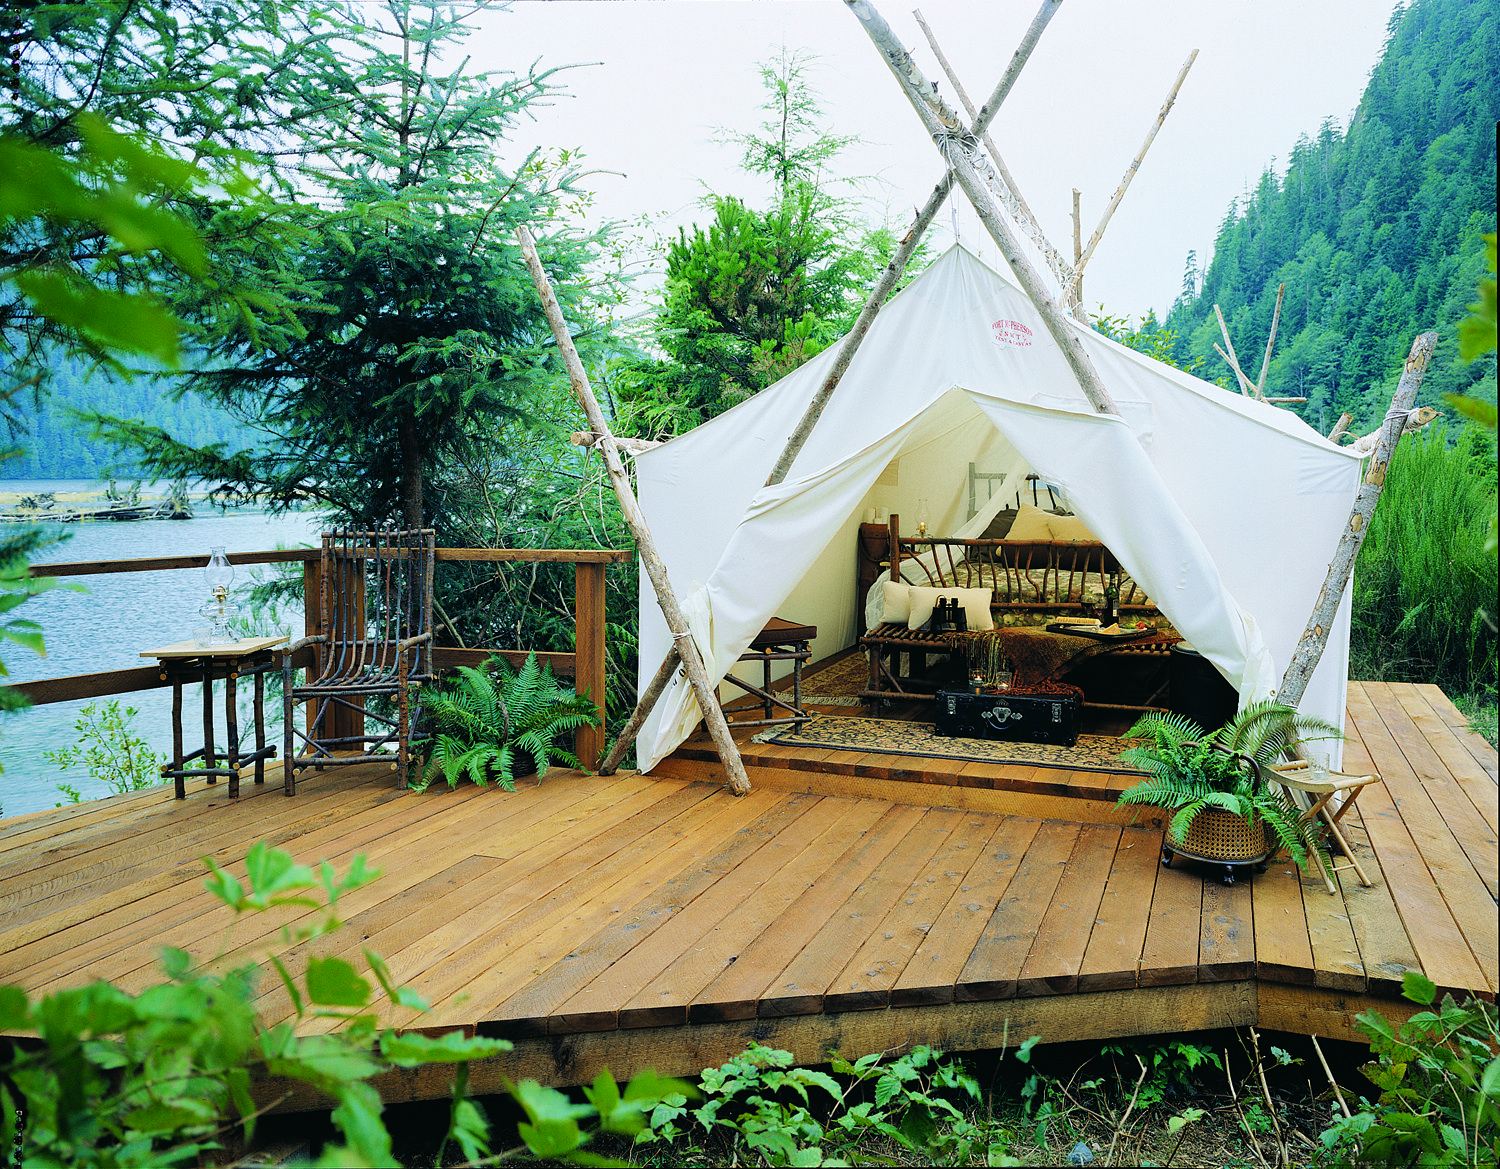 One of the original Outpost Deluxe tents Circa Clayoquot